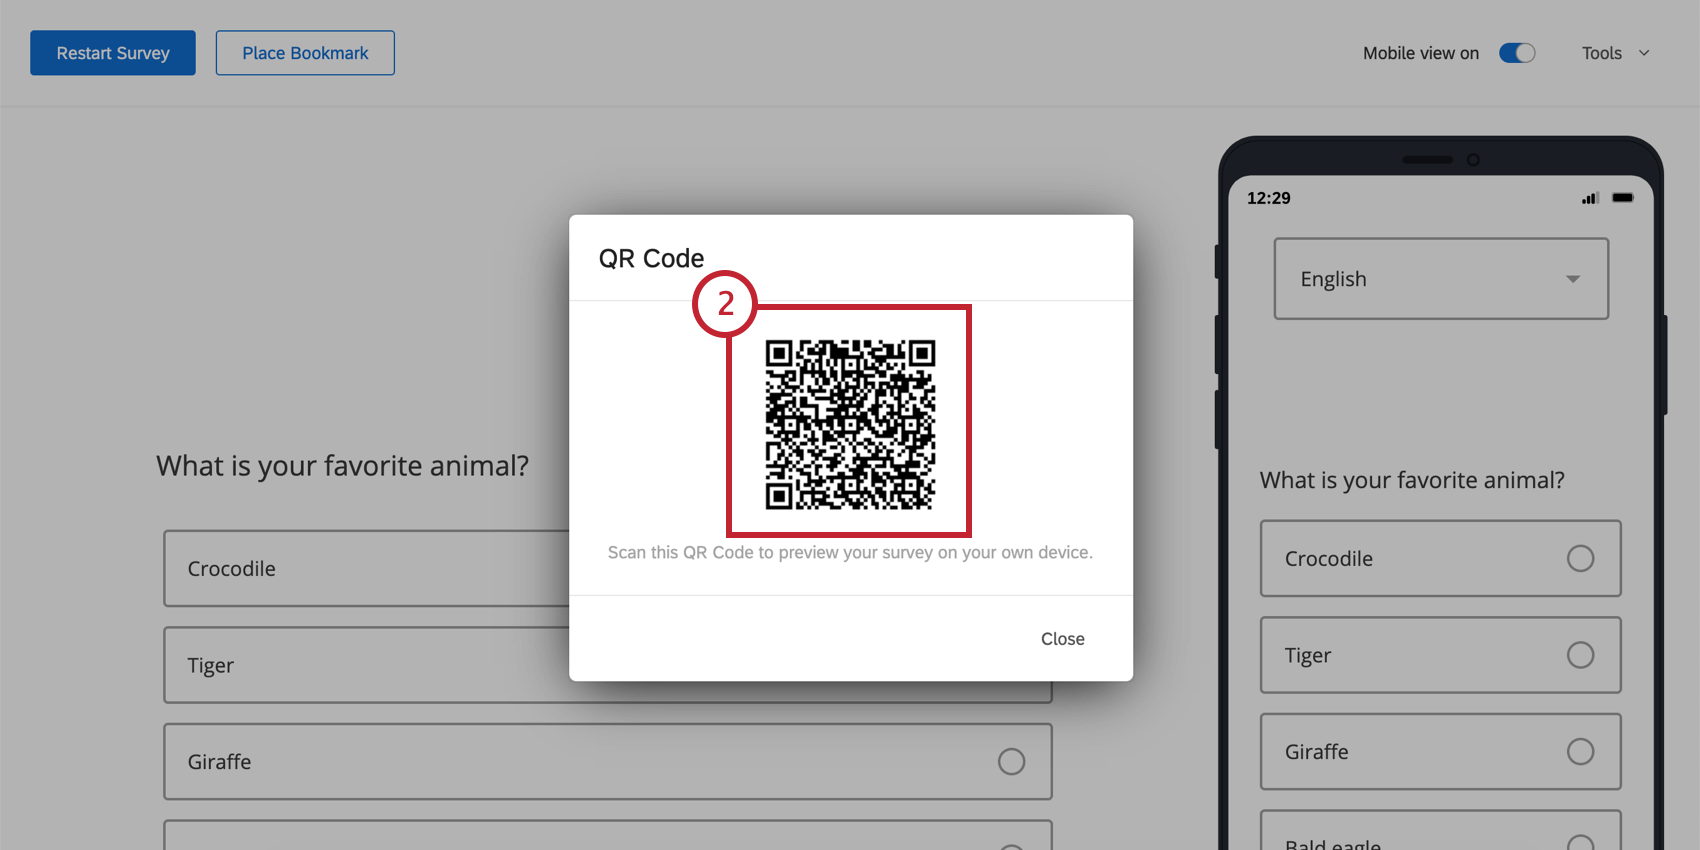 QR Code window overlay on the Preview page